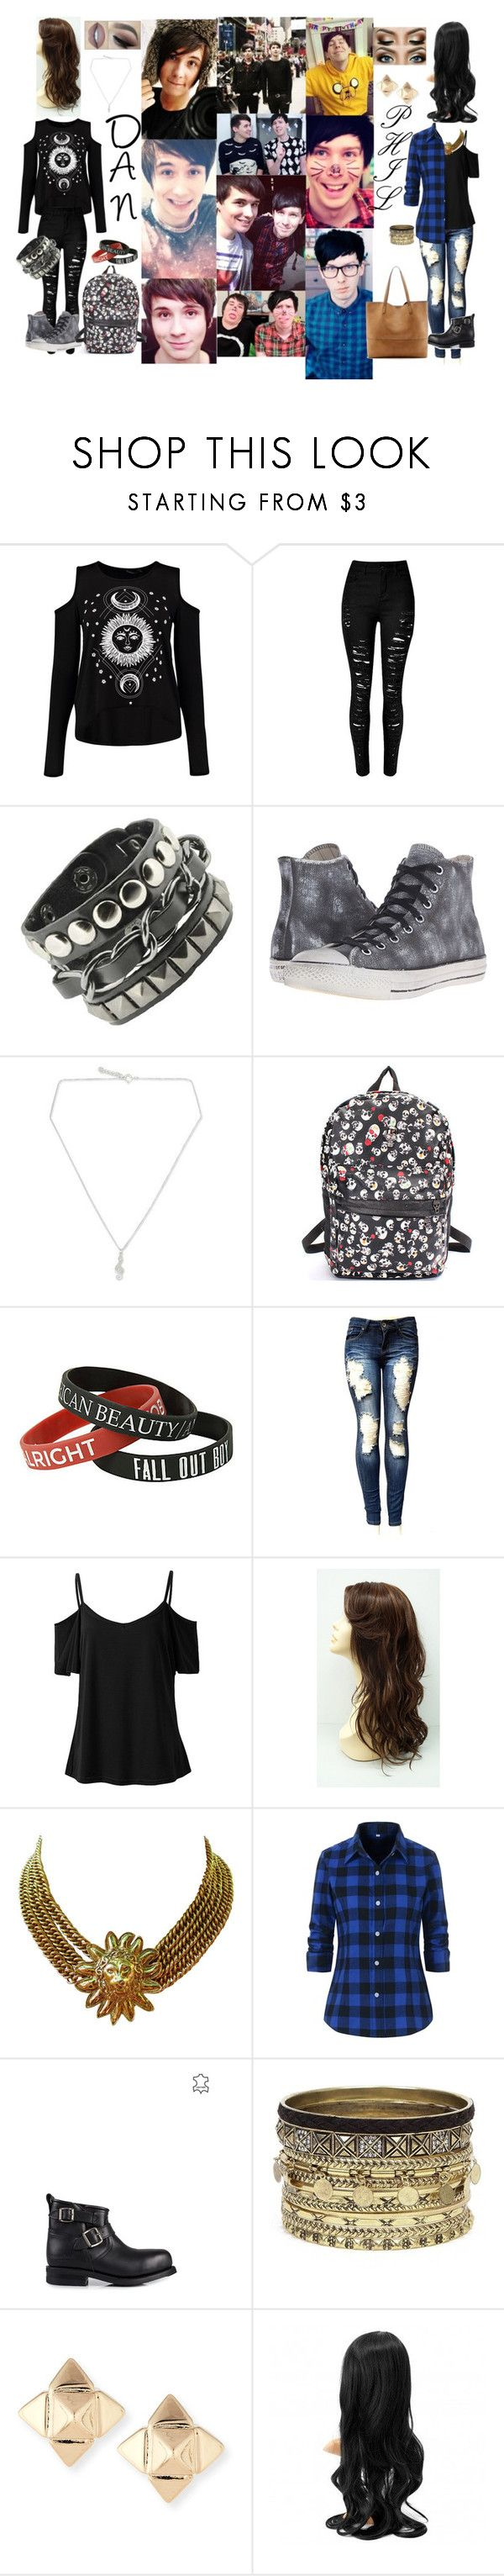 """""""FEMALE_--_**DAN & PHIL Outfit"""" by alec-enjolras on Polyvore featuring Mode, Converse, NOVICA, Chanel, Primeboots, Daytrip, Valentino und Sole Society"""